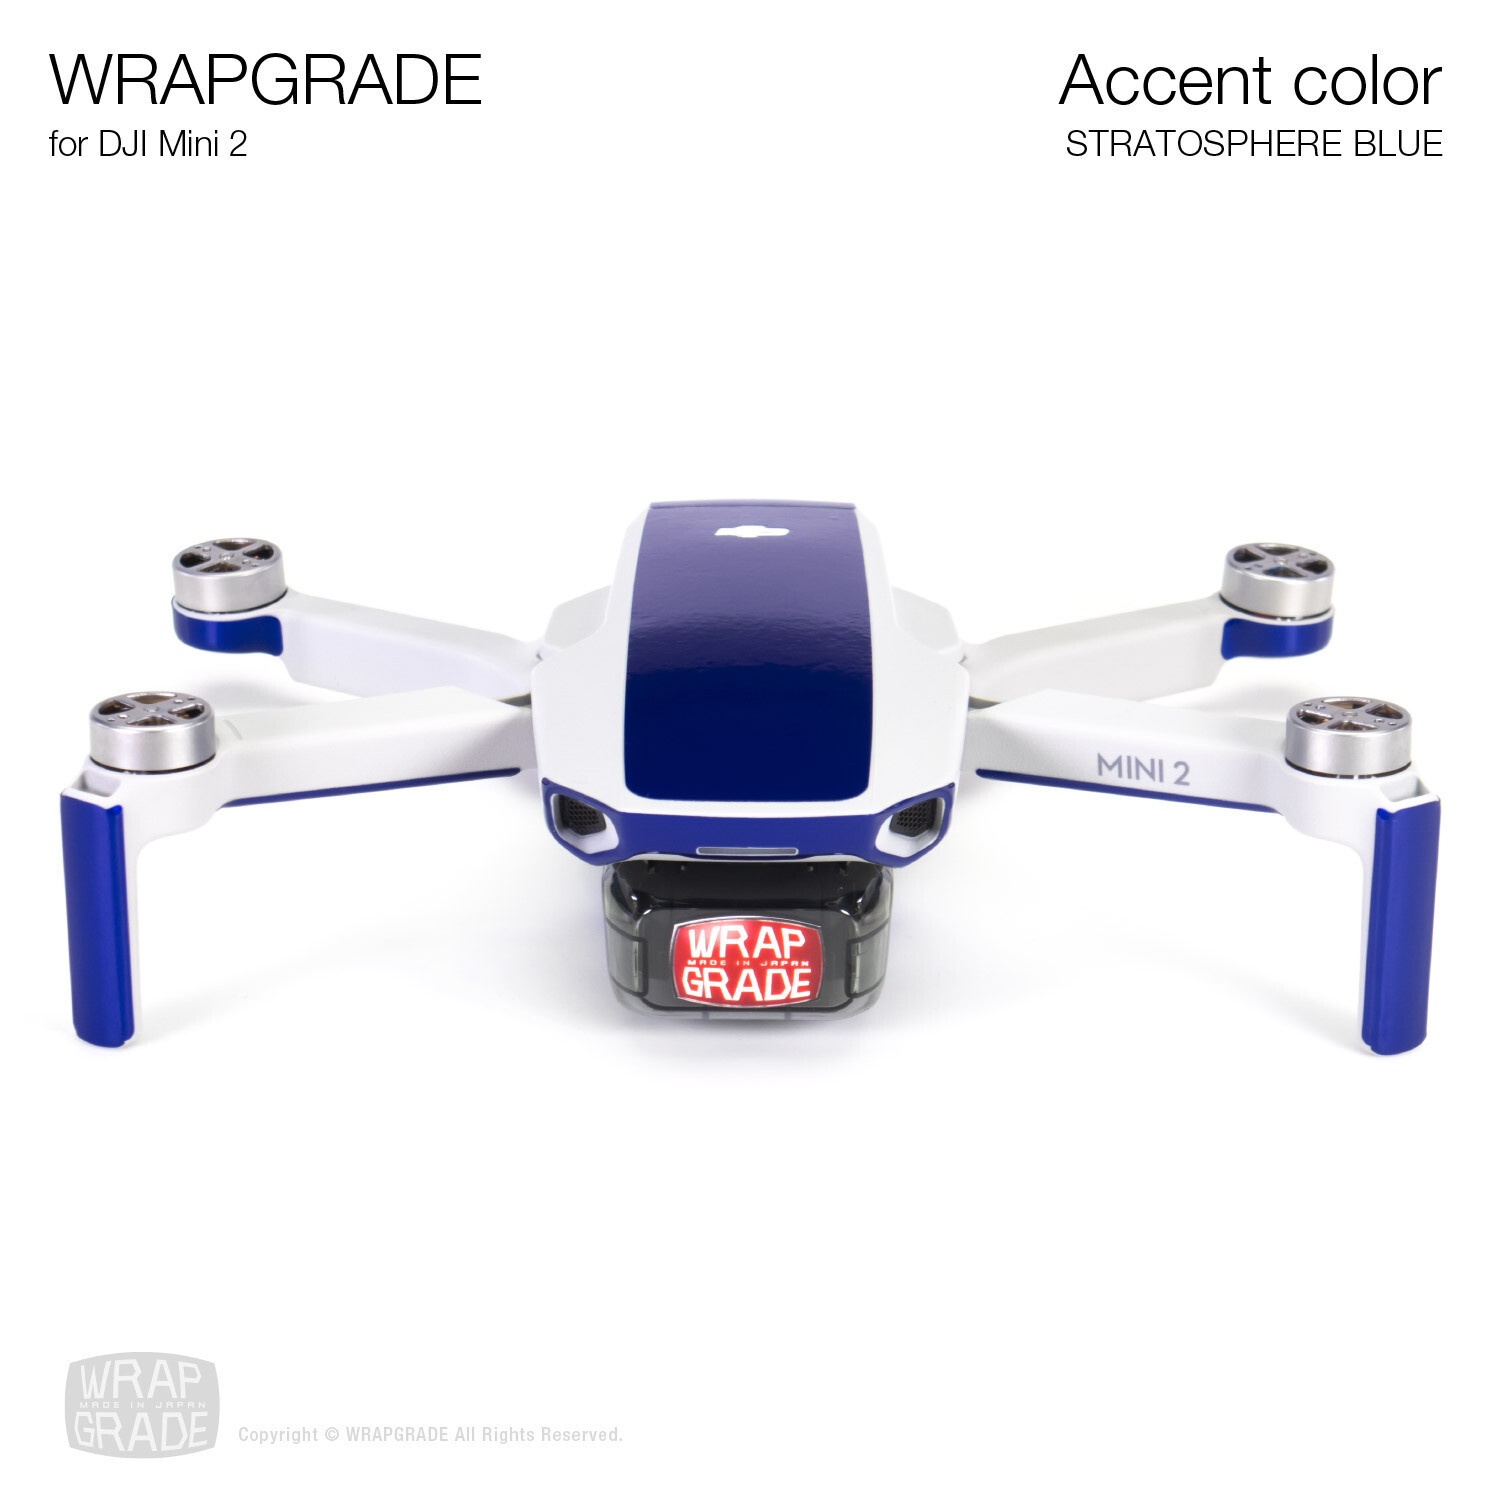 Wrapgrade Poly Skin for DJI Mini 2 | Accent color (STRATOSPHERE BLUE)